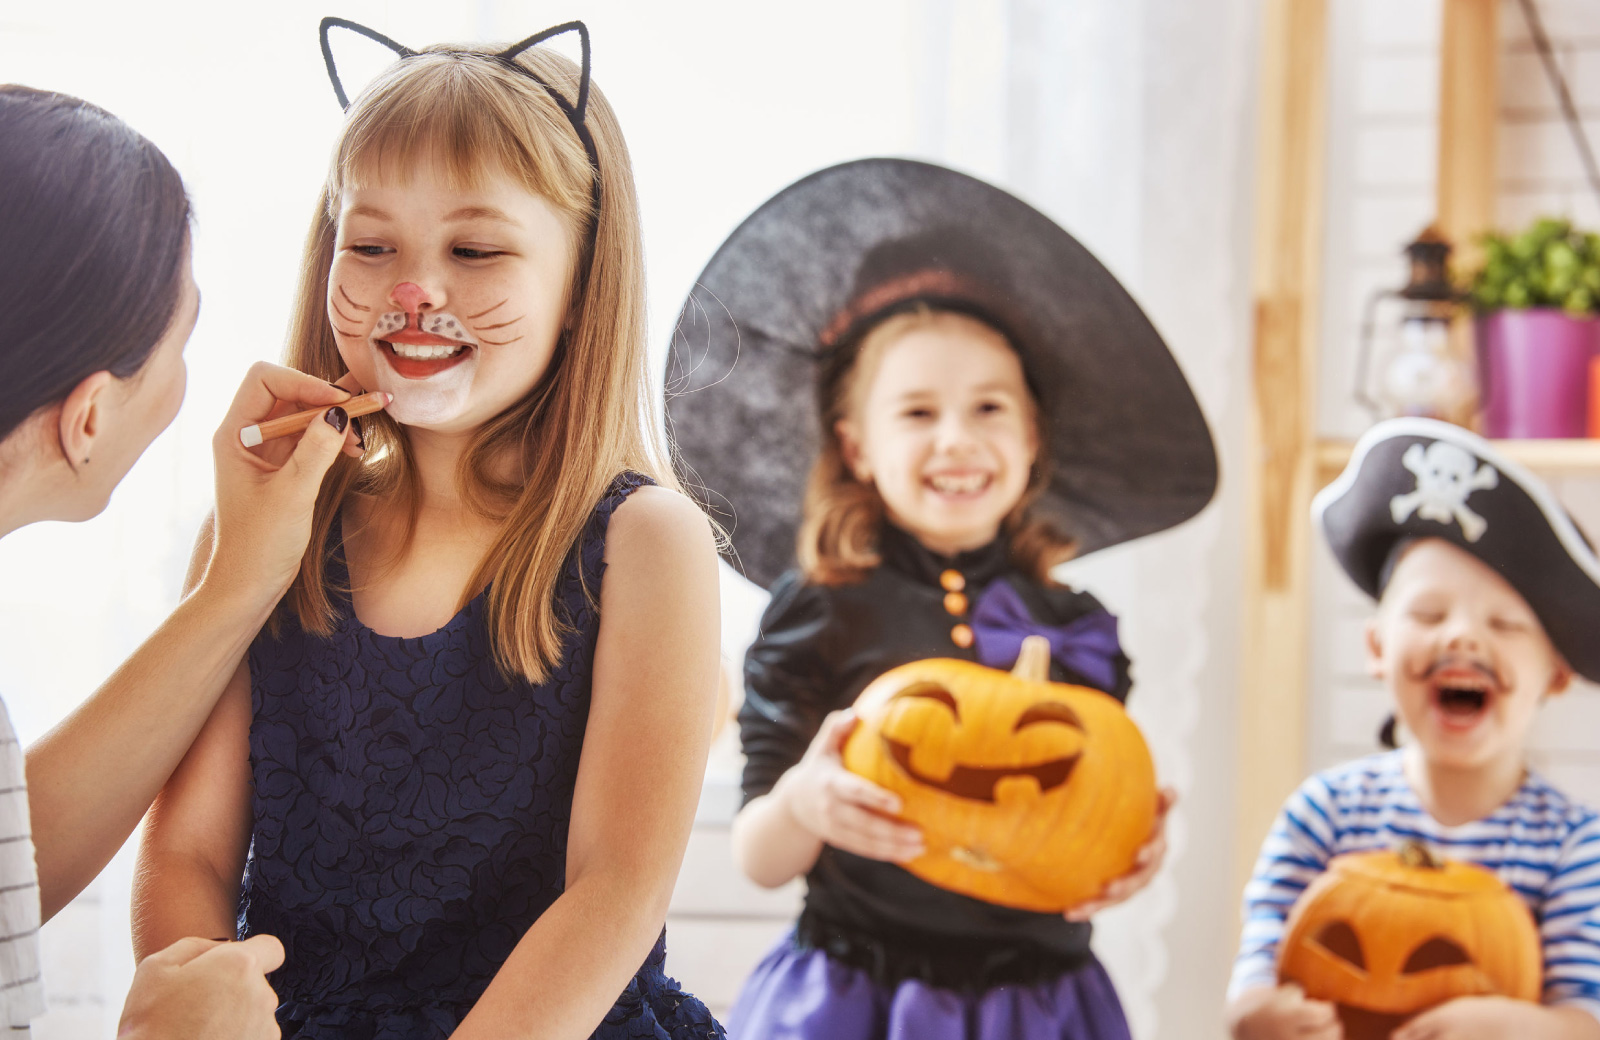 little girls in cat costume & witch costume getting ready for trick or treat - hyde square bellevue